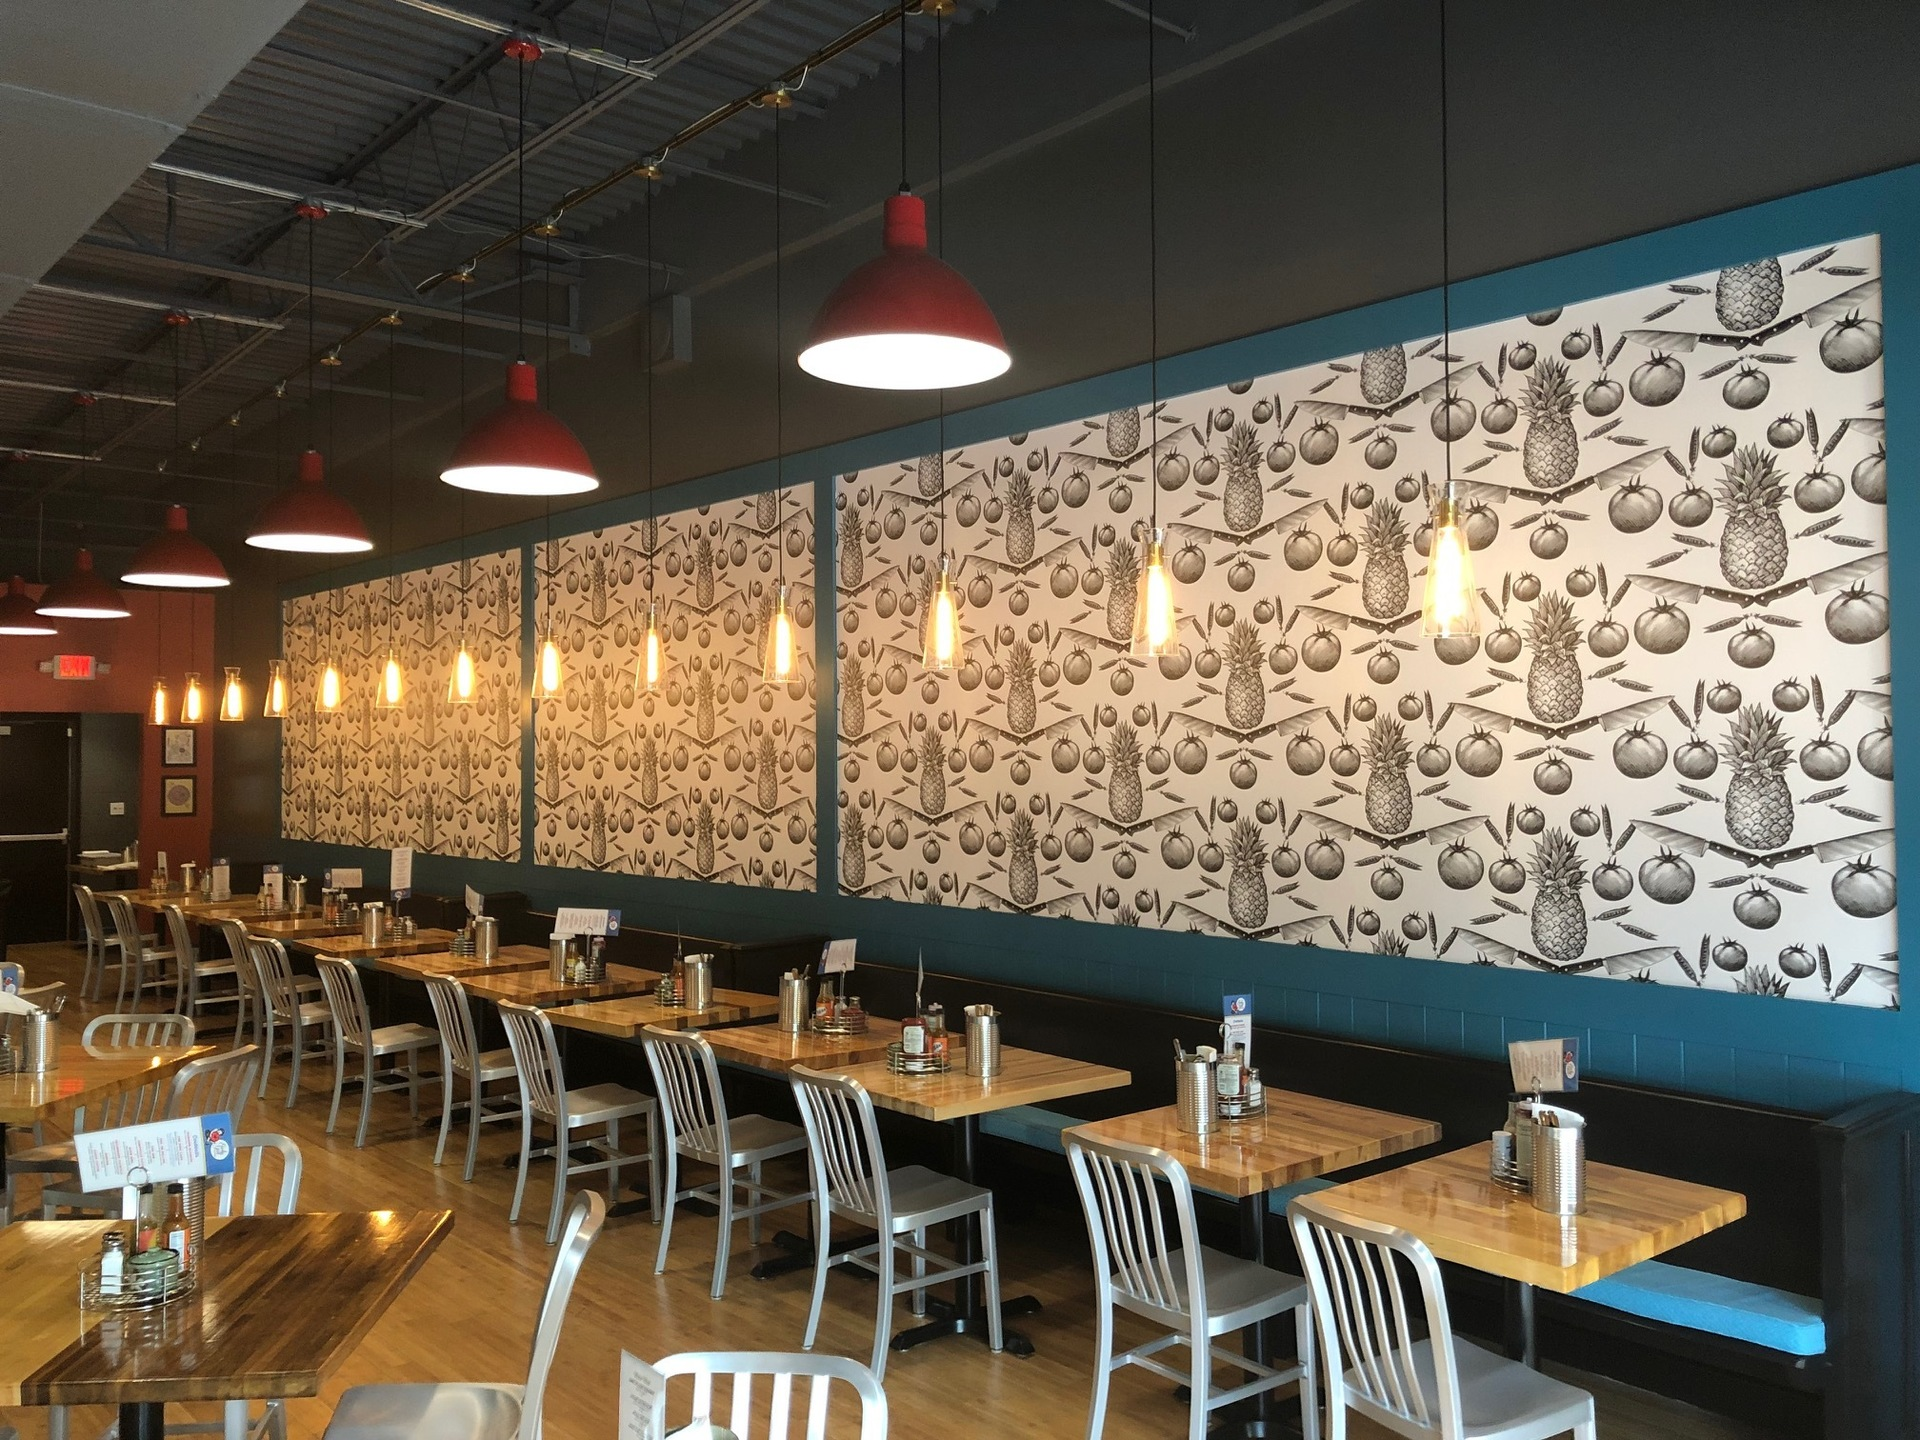 This bar and restaurant features a unique pineapple patterned wallpaper by Murals Your Way, which creates such an amazing conversational piece.